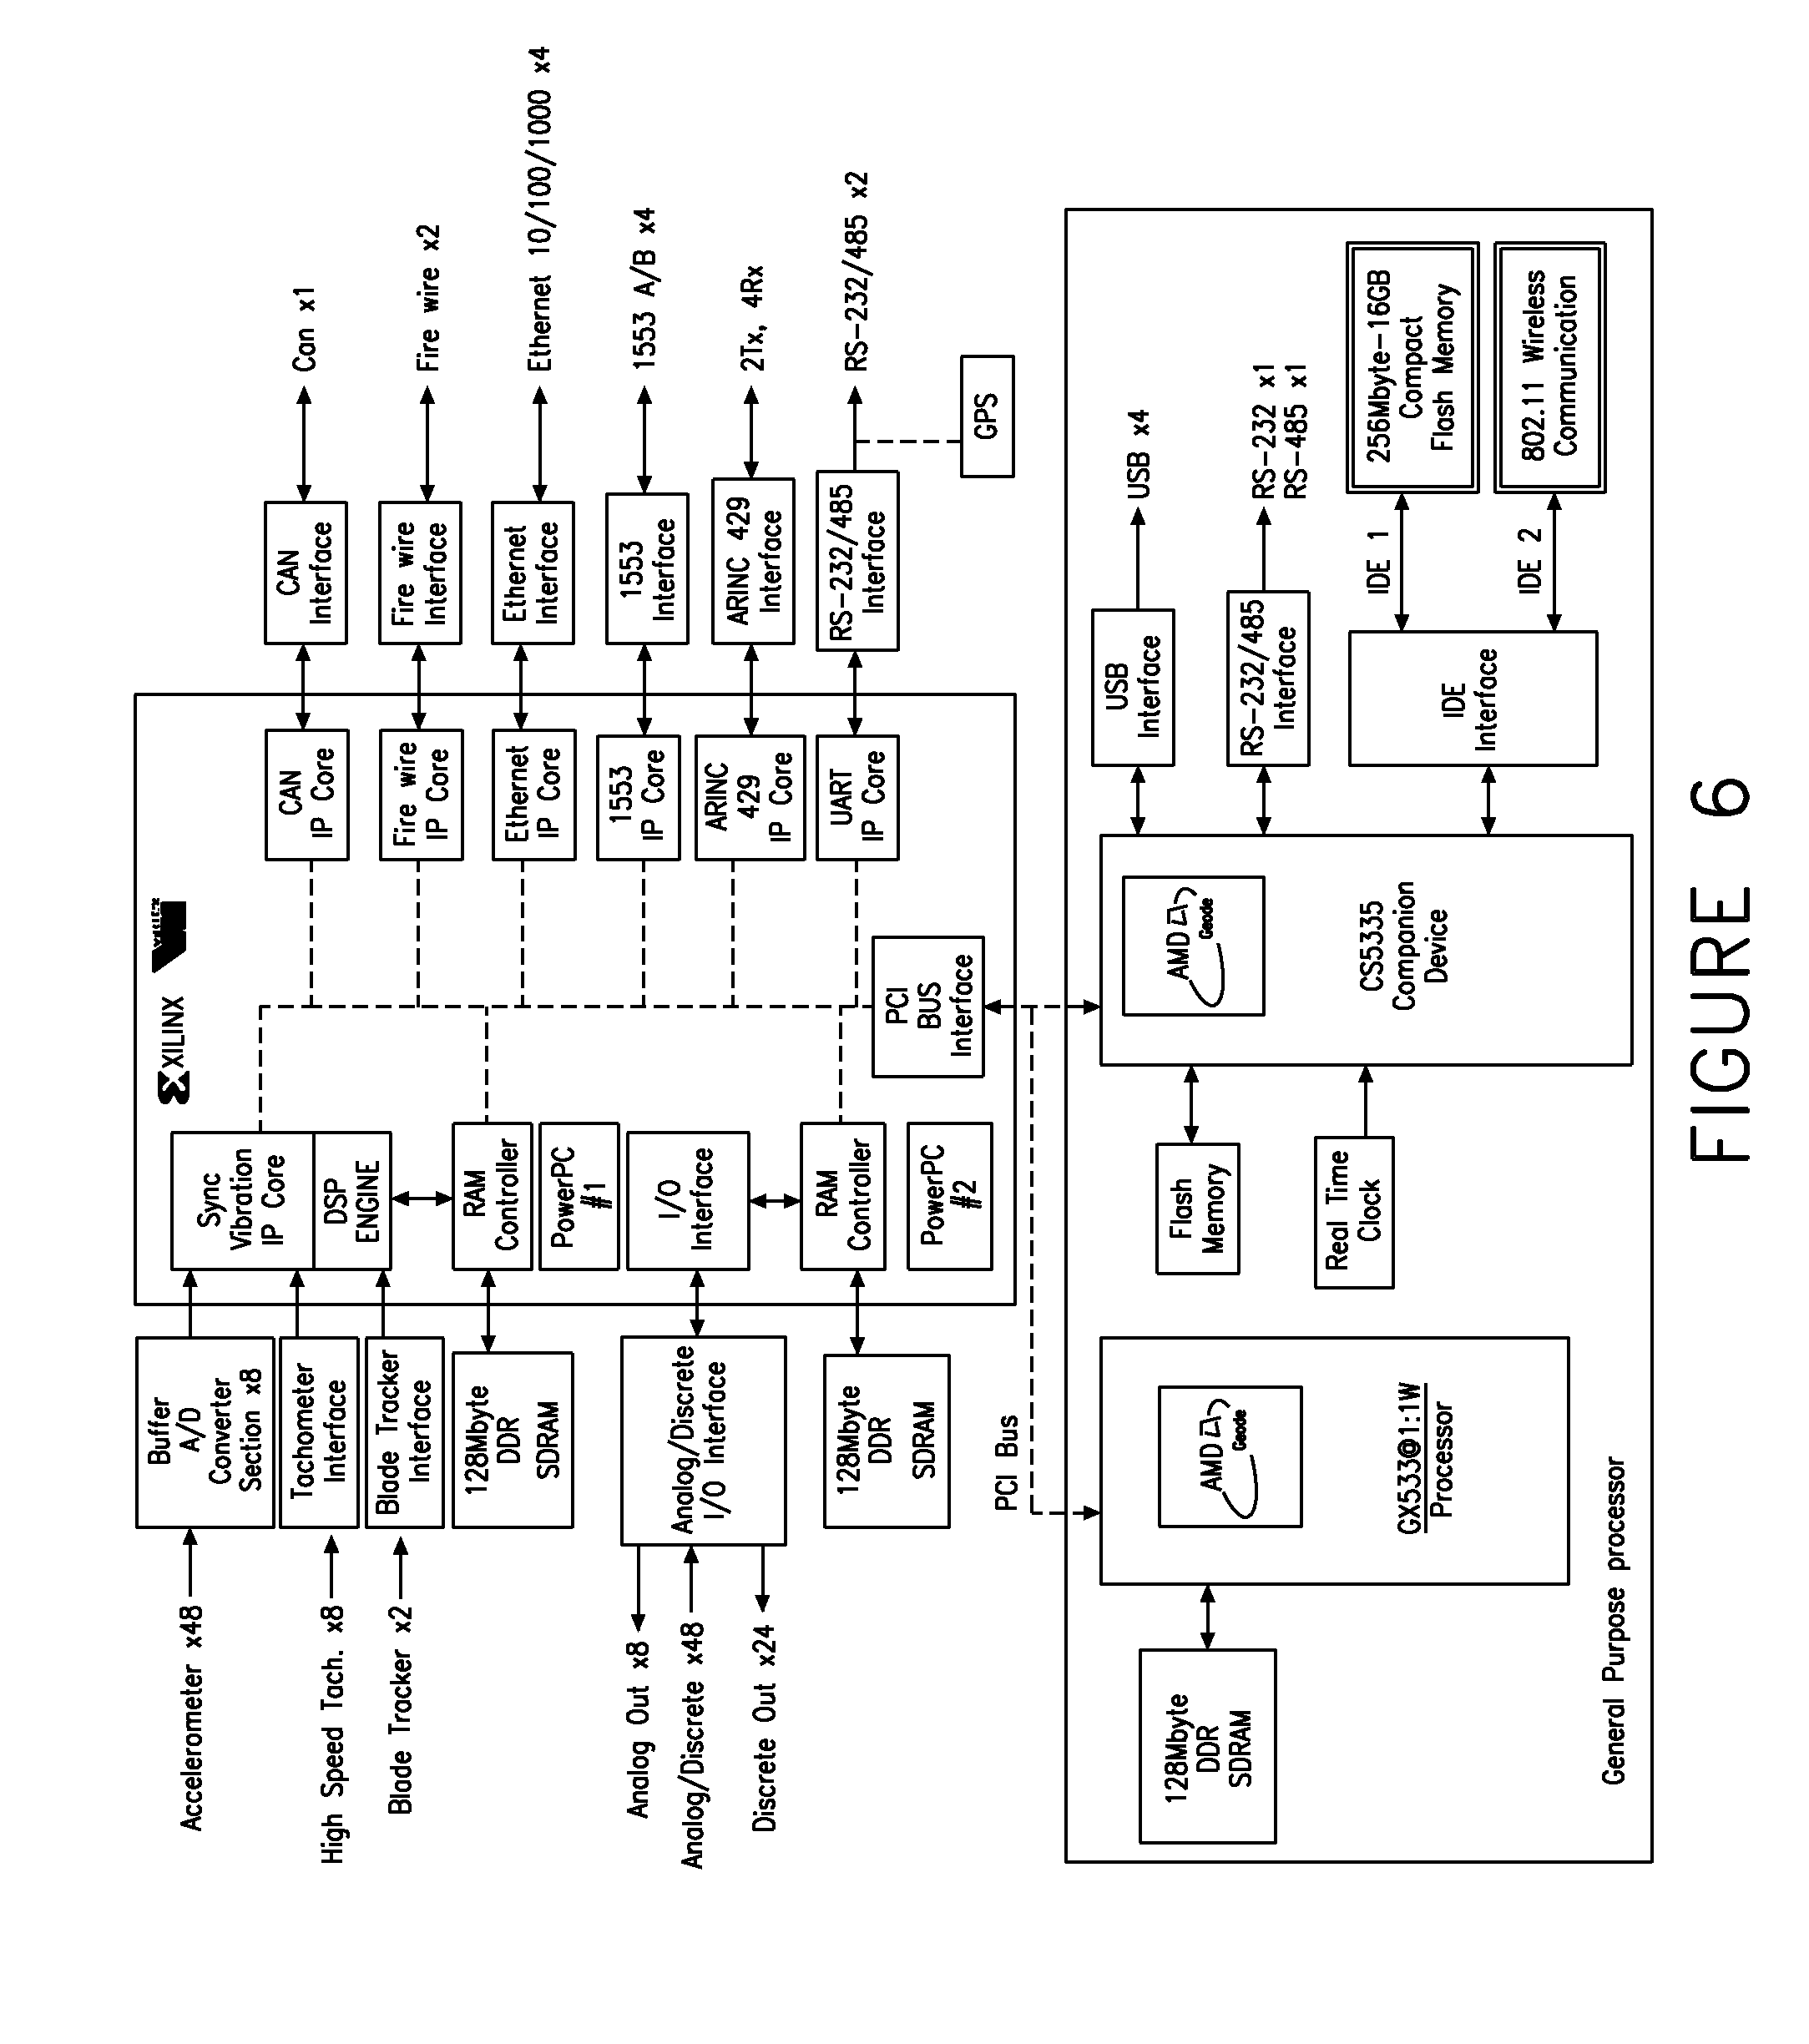 2006 f350 fuse diagram 2006 ford lcf fuse box e4 wiring diagram 2006 ford f350 wiring diagram 2006 ford lcf fuse box e4 wiring diagram